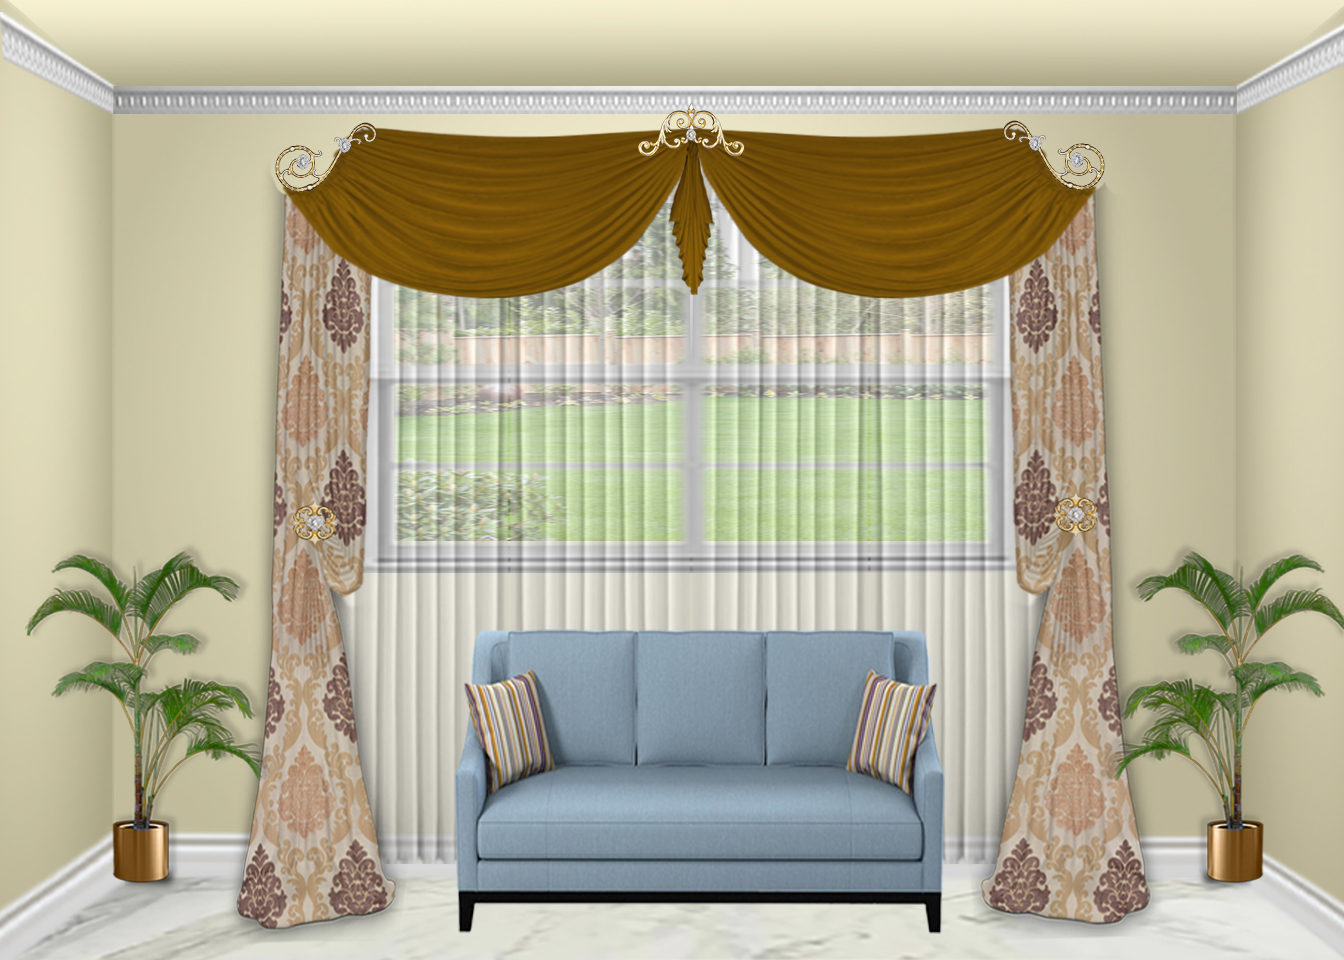 How to choose perfect curtains for your house